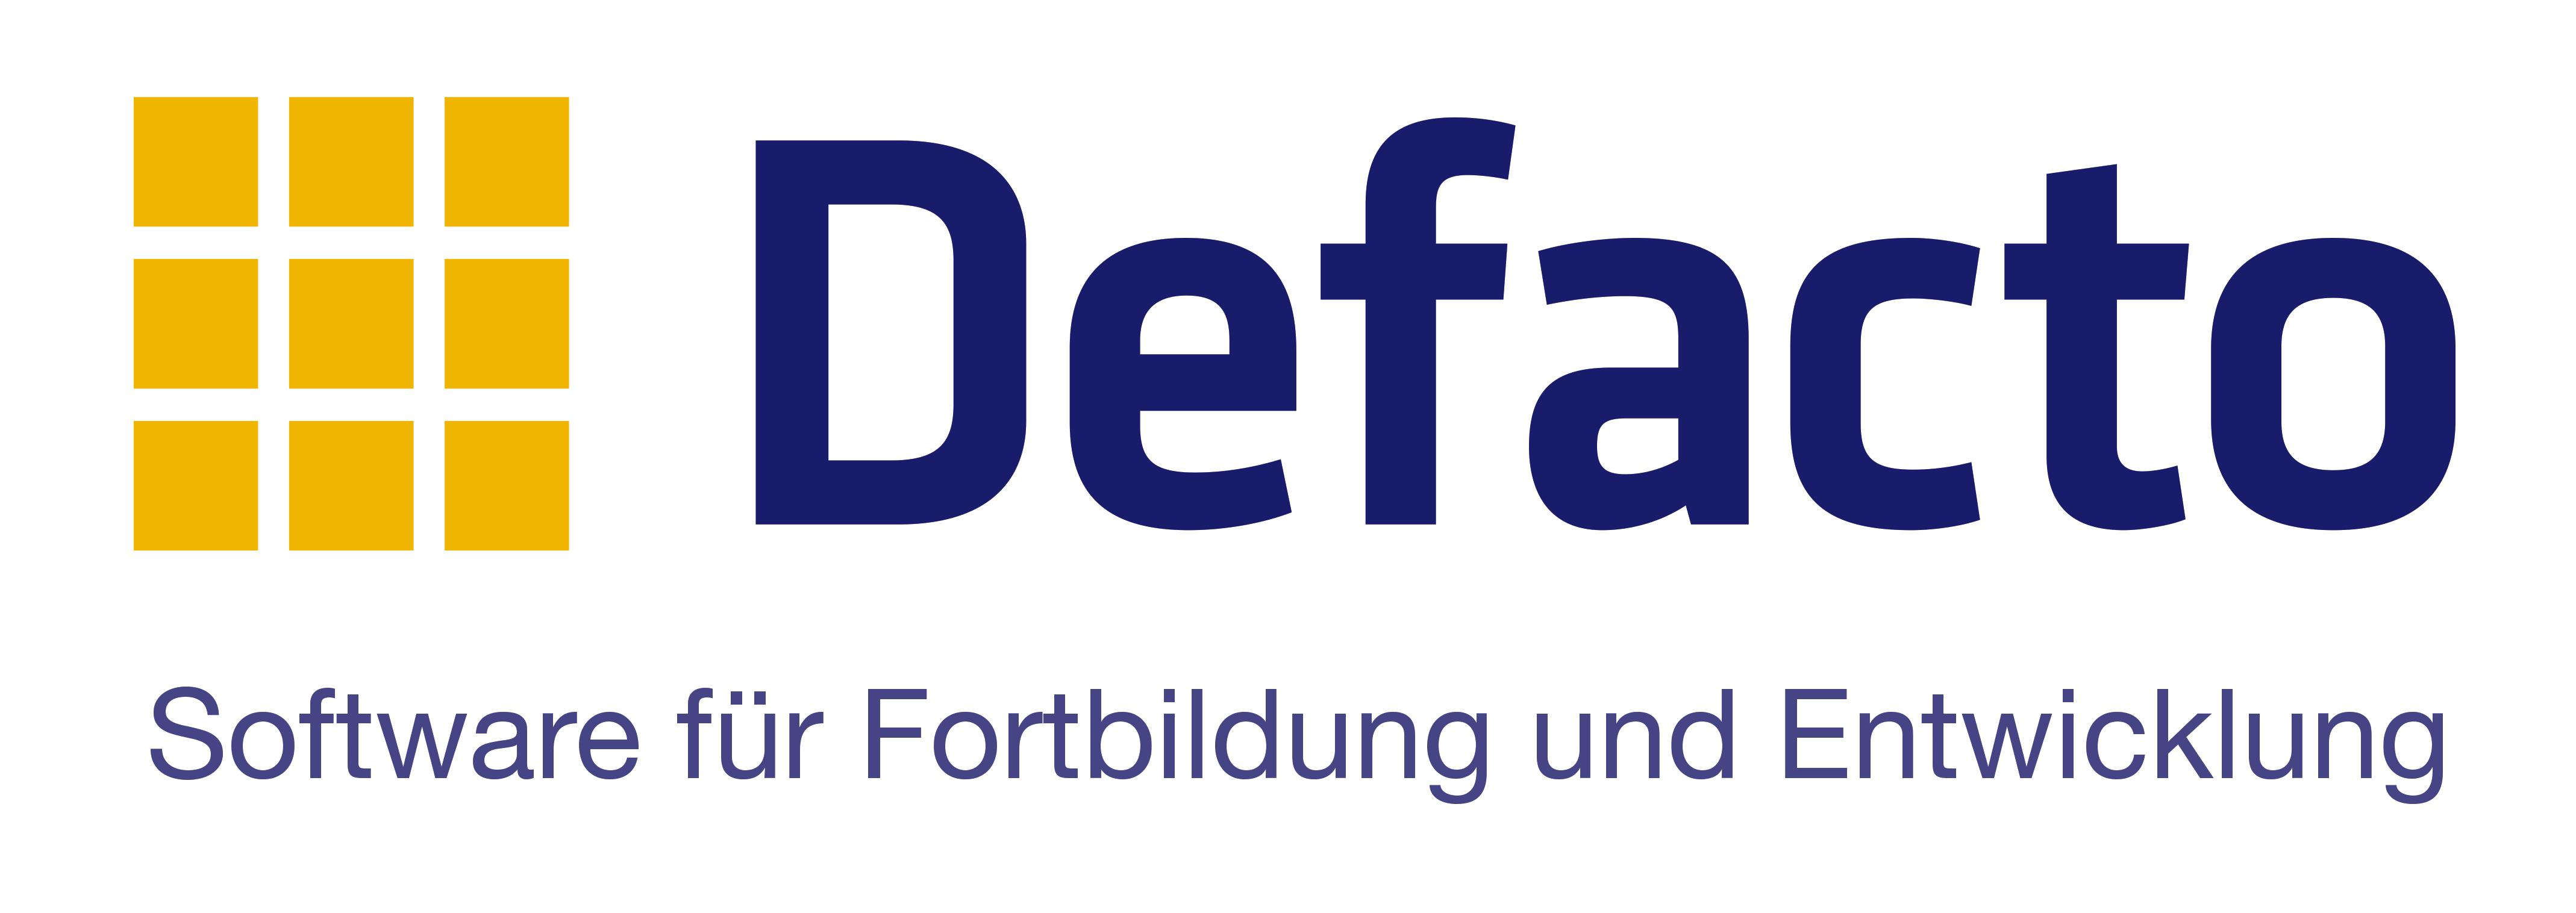 Defacto Software BV